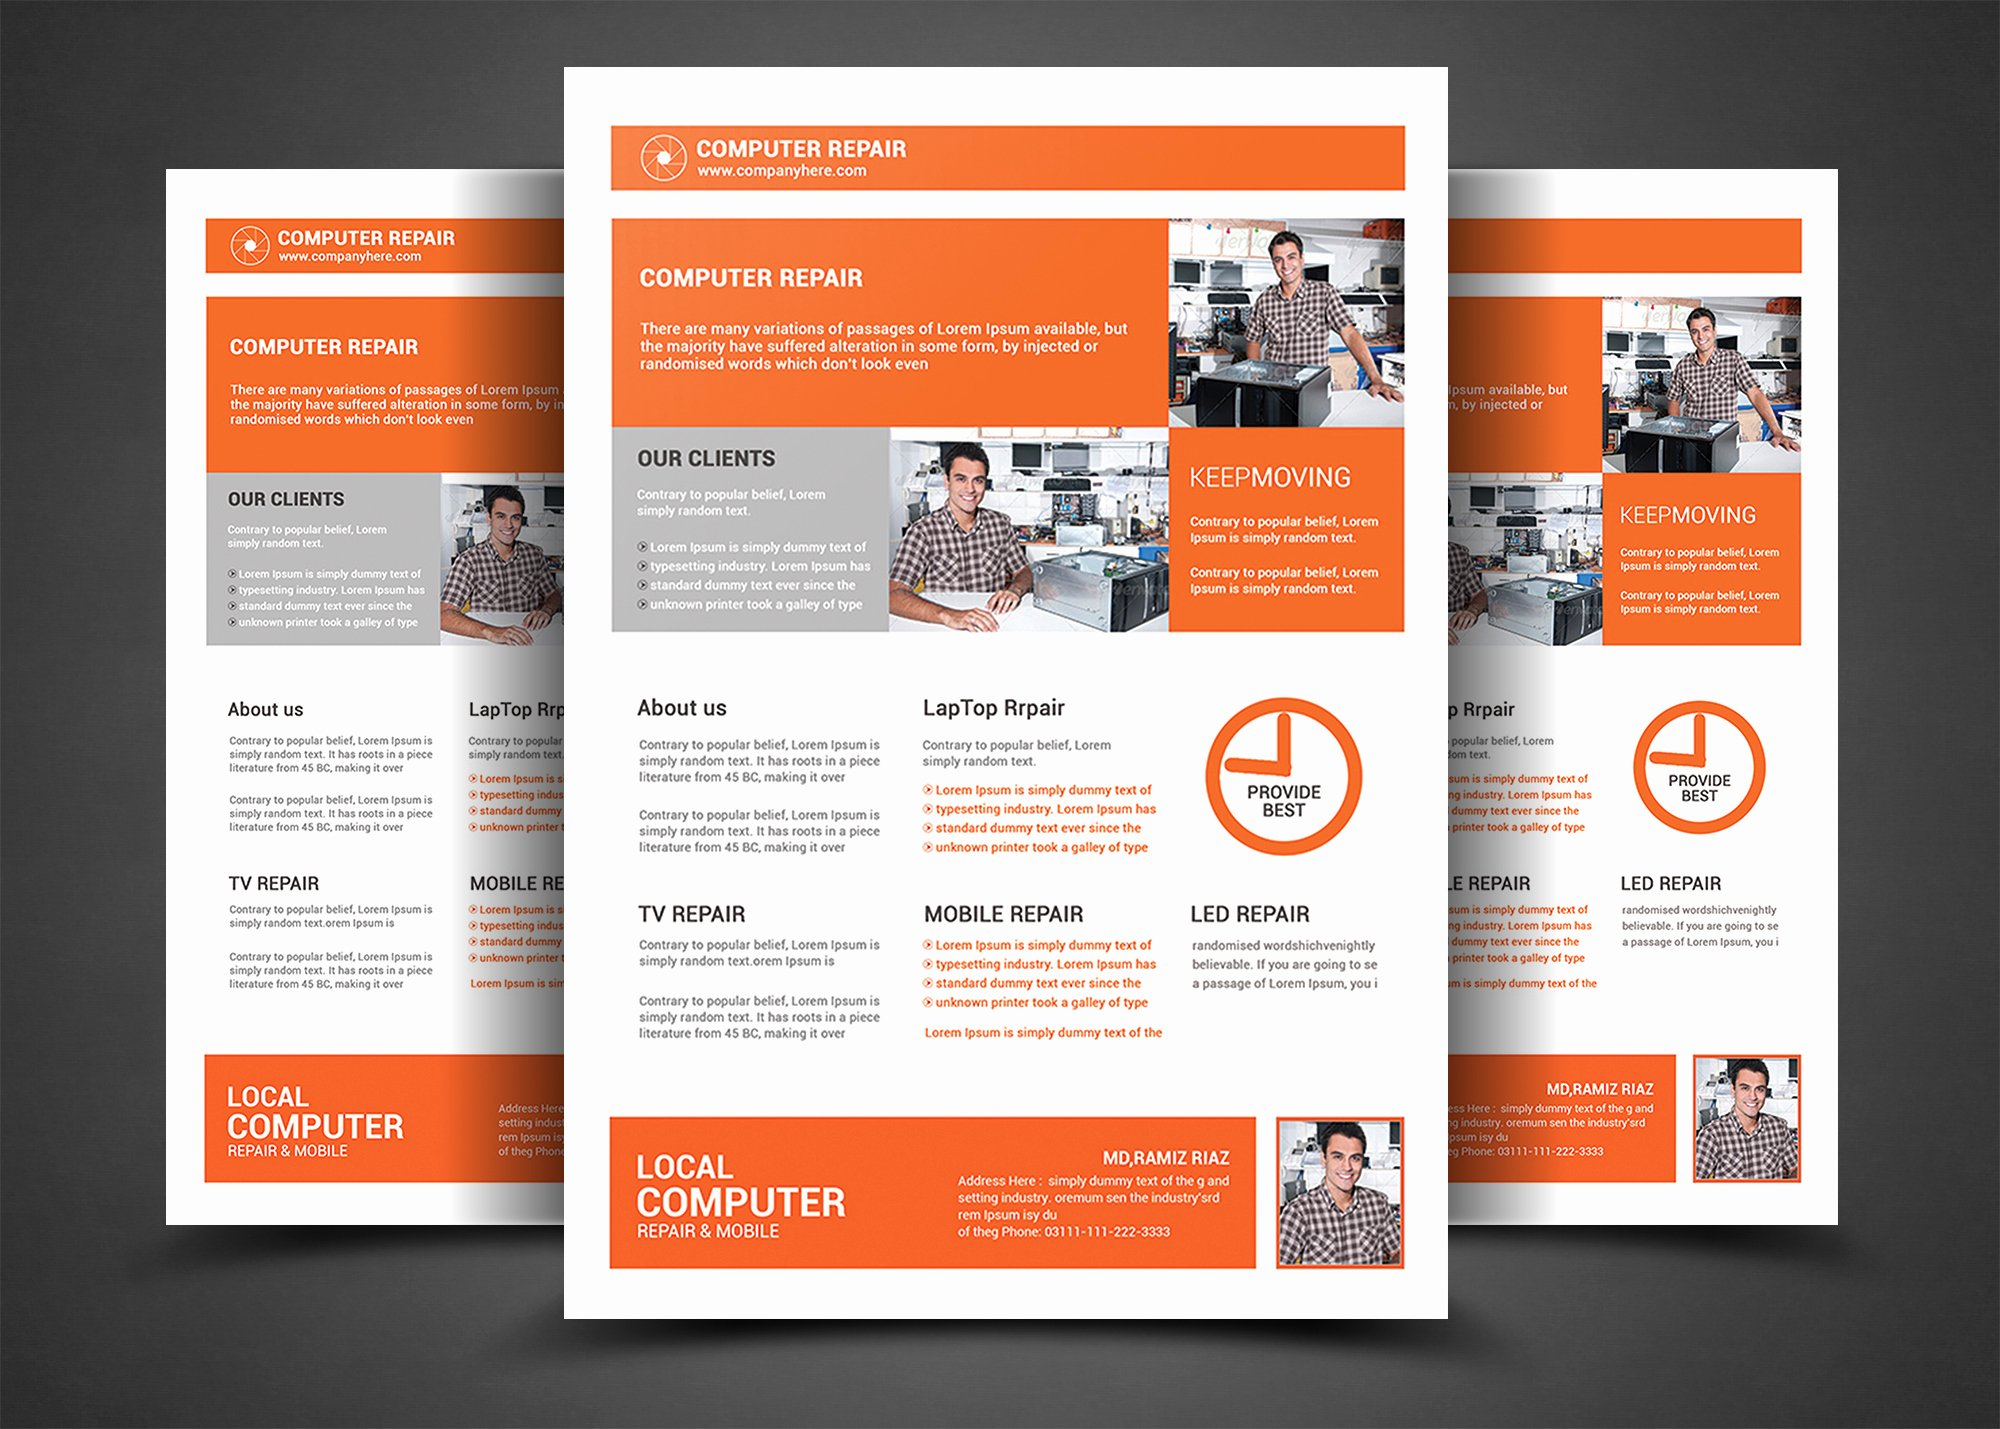 Computer Repair Flyer Template New Puter Repair Flyer Template Flyer Templates On